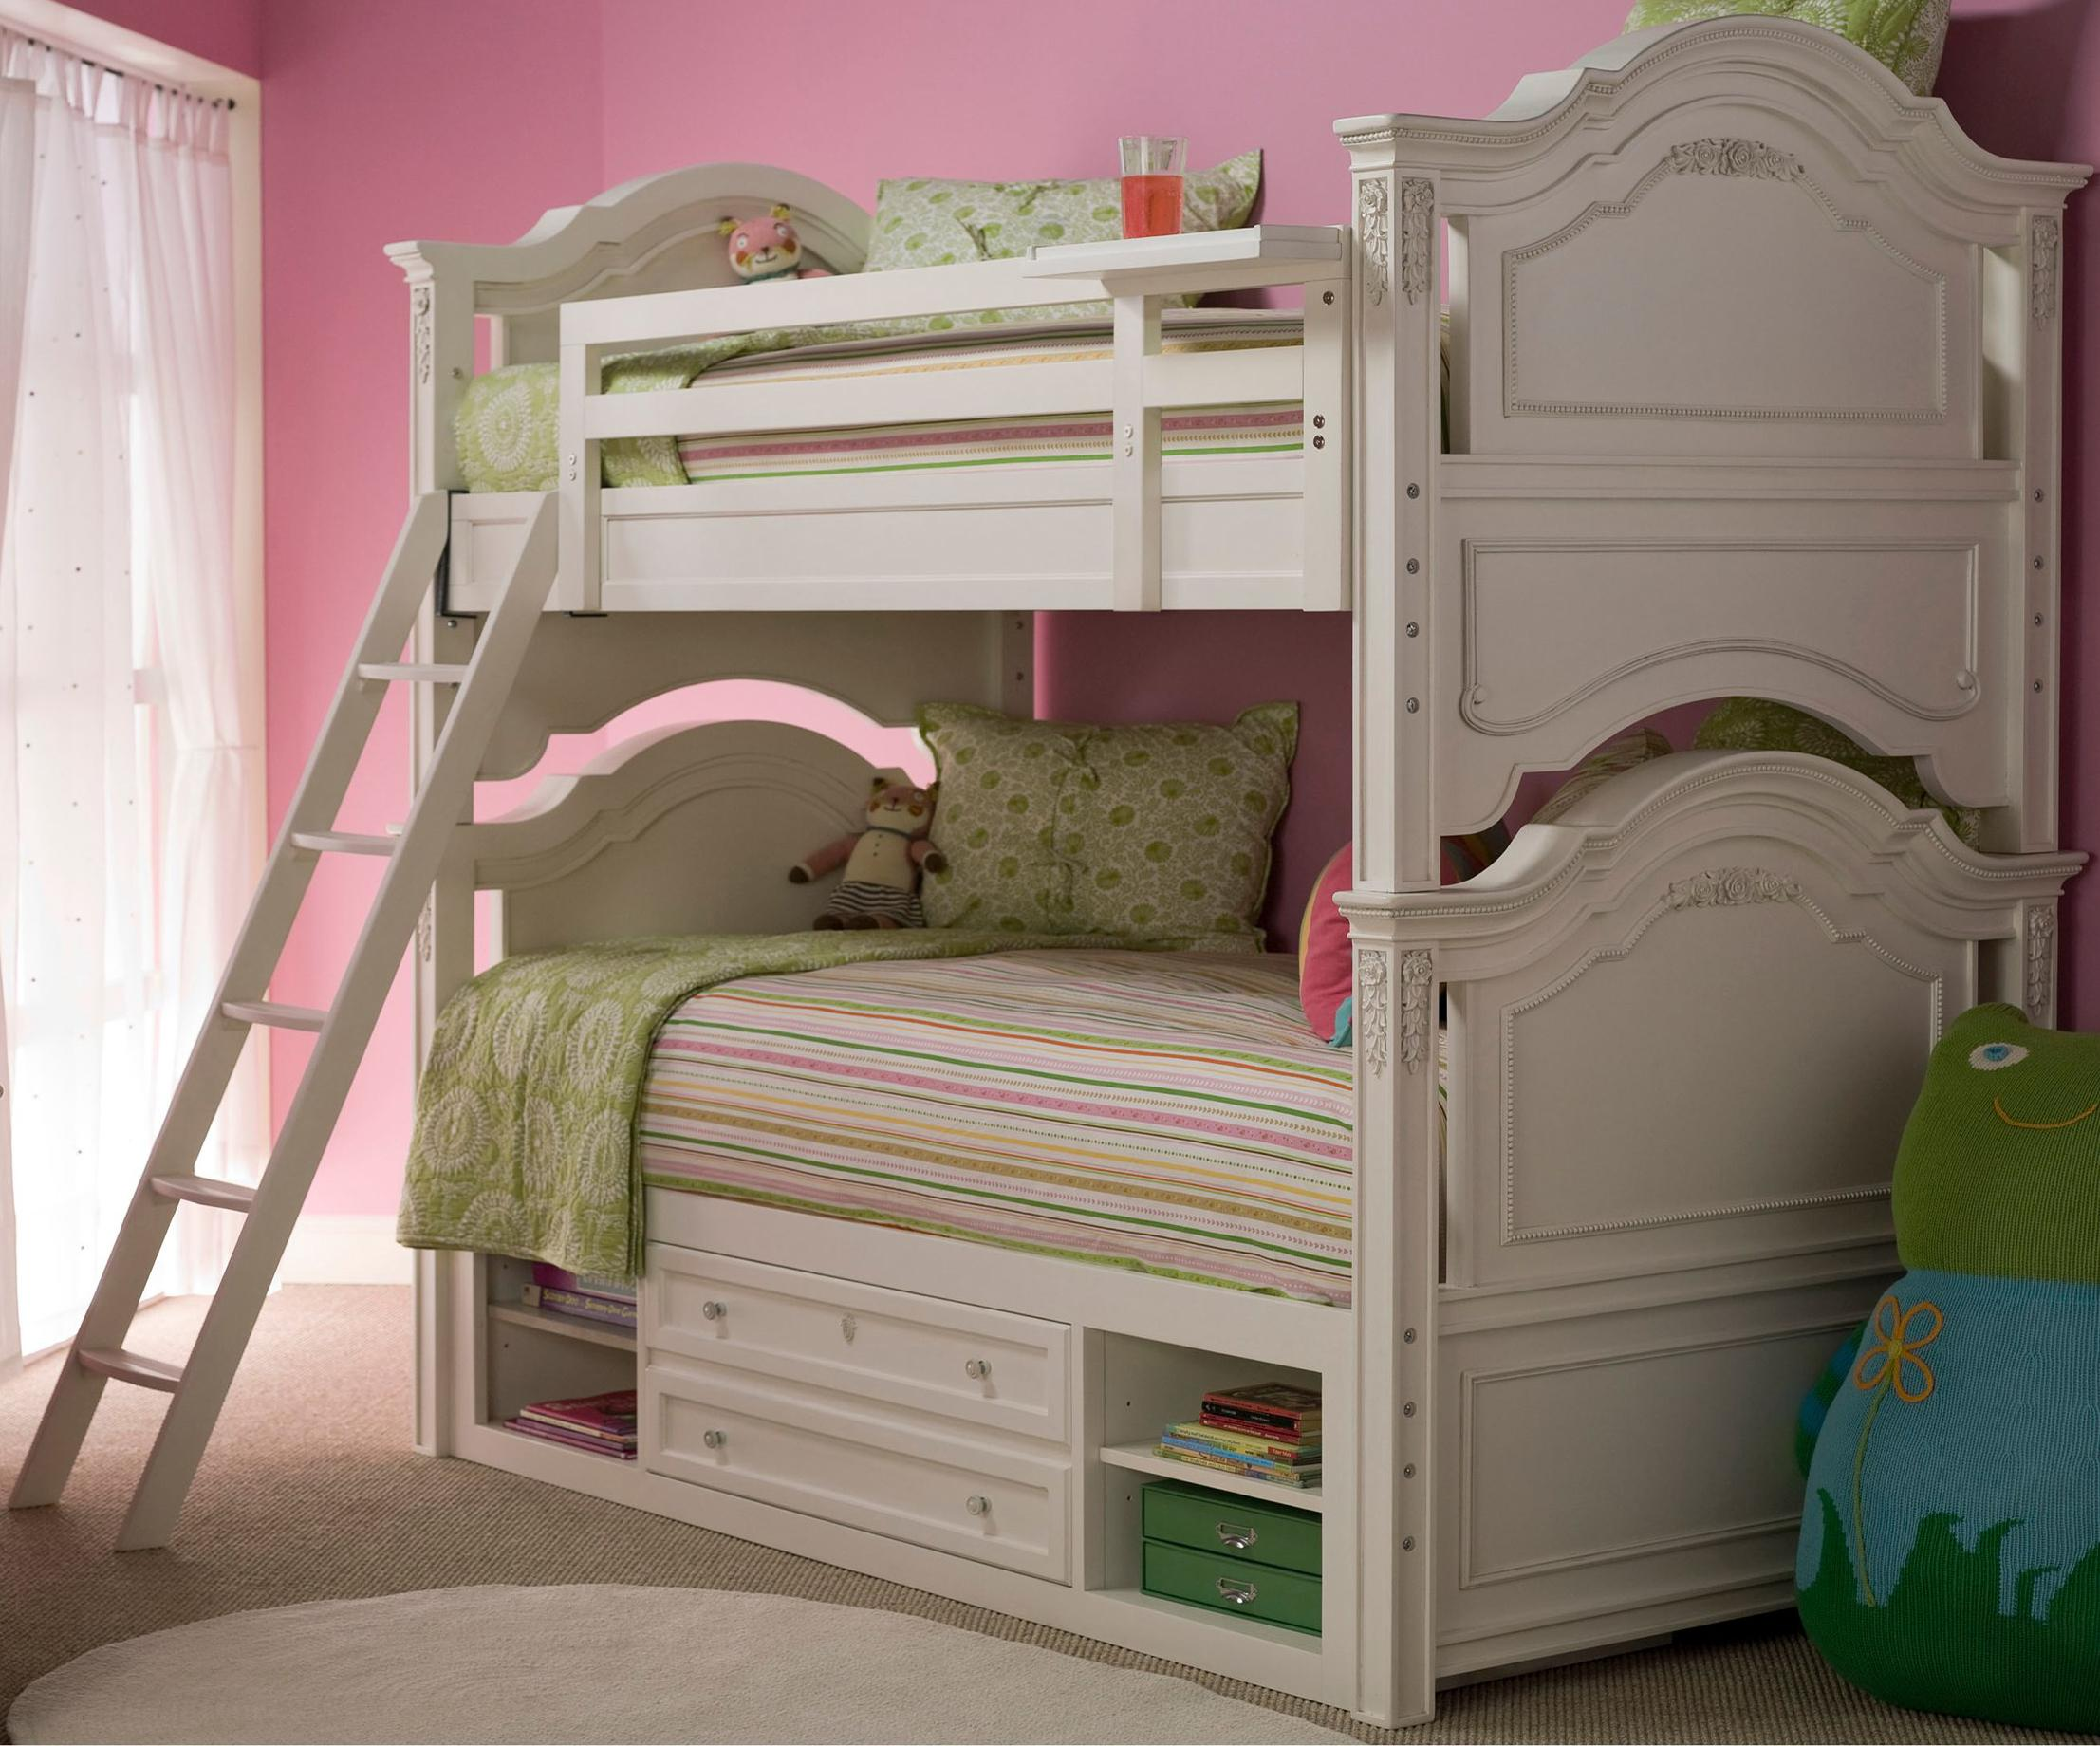 Smartstuff Gabriella Bunk Bed with Storage  - Item Number: 136A530+061